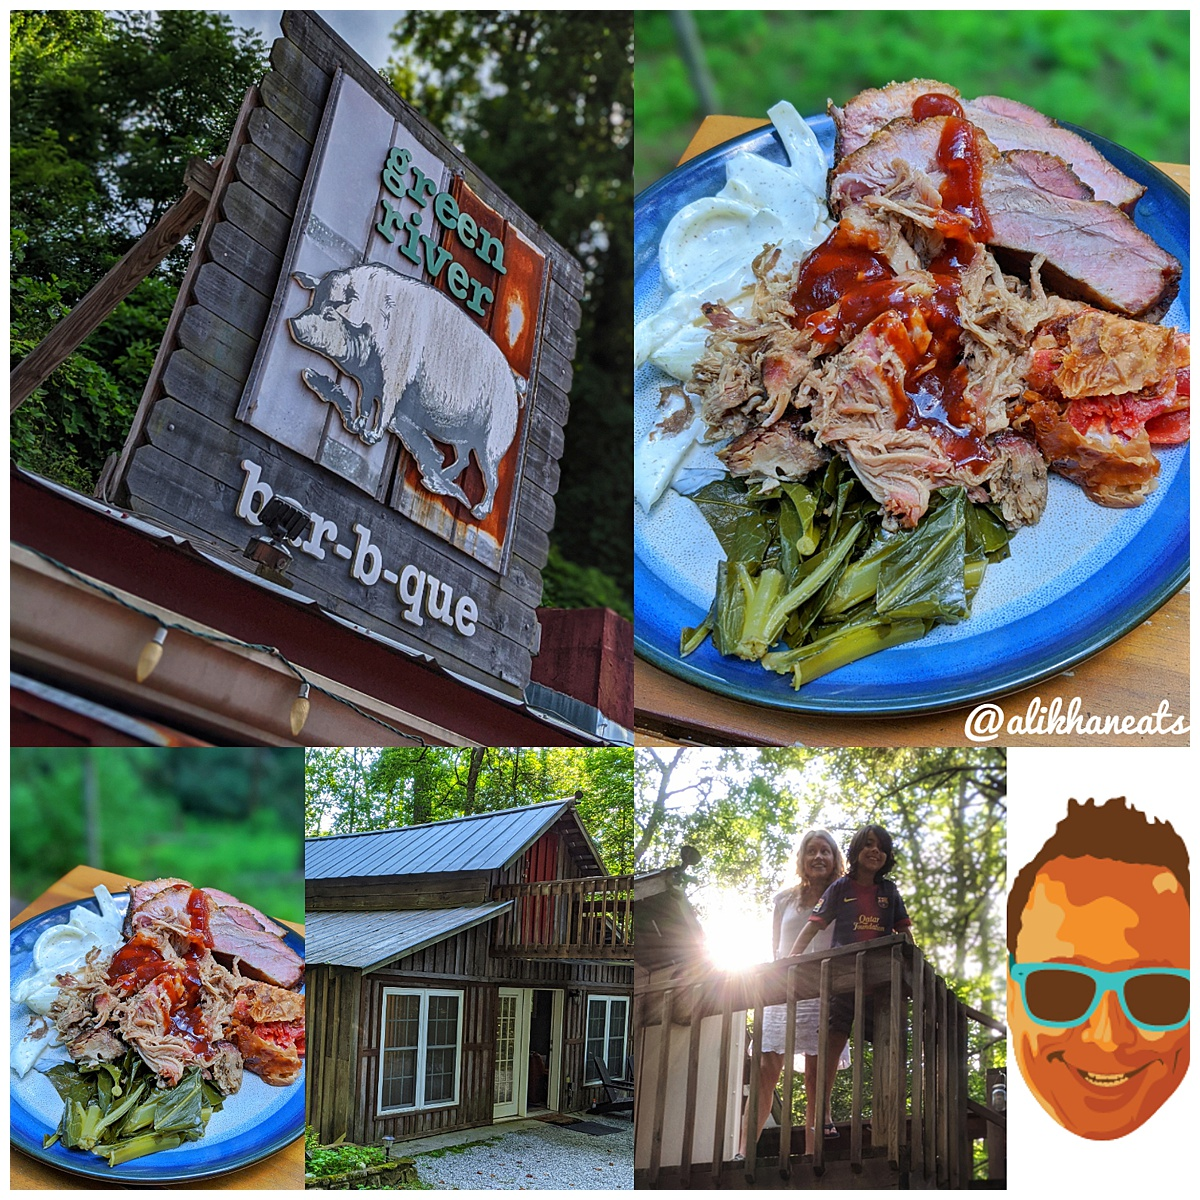 Green River BBQ montage